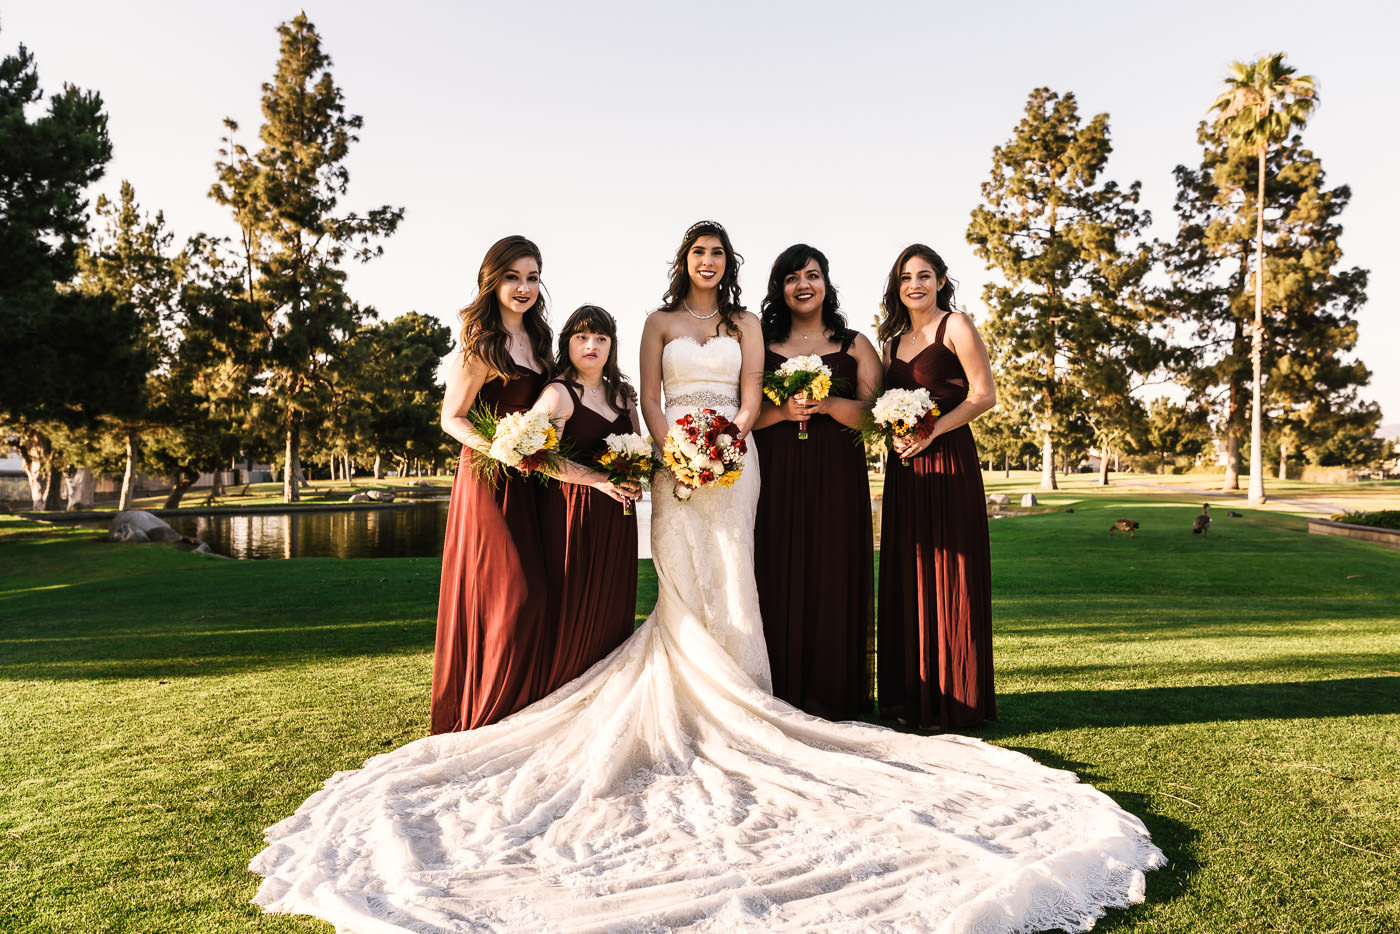 Bride poses with her bridesmaids on the grounds of the Alta VIsta Country Club.